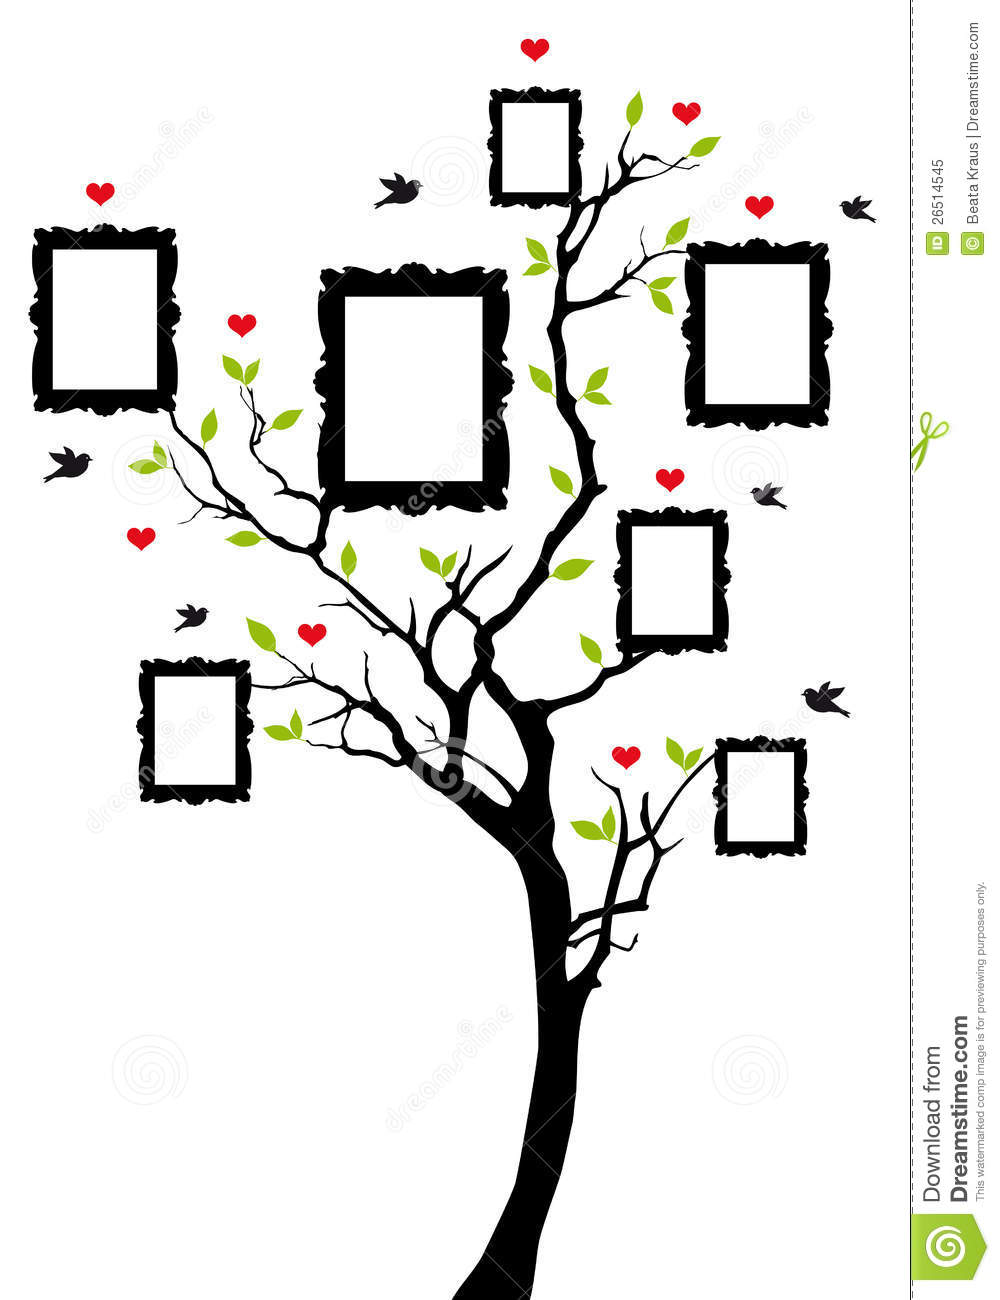 Family tree with picture frames, vector background illustration.